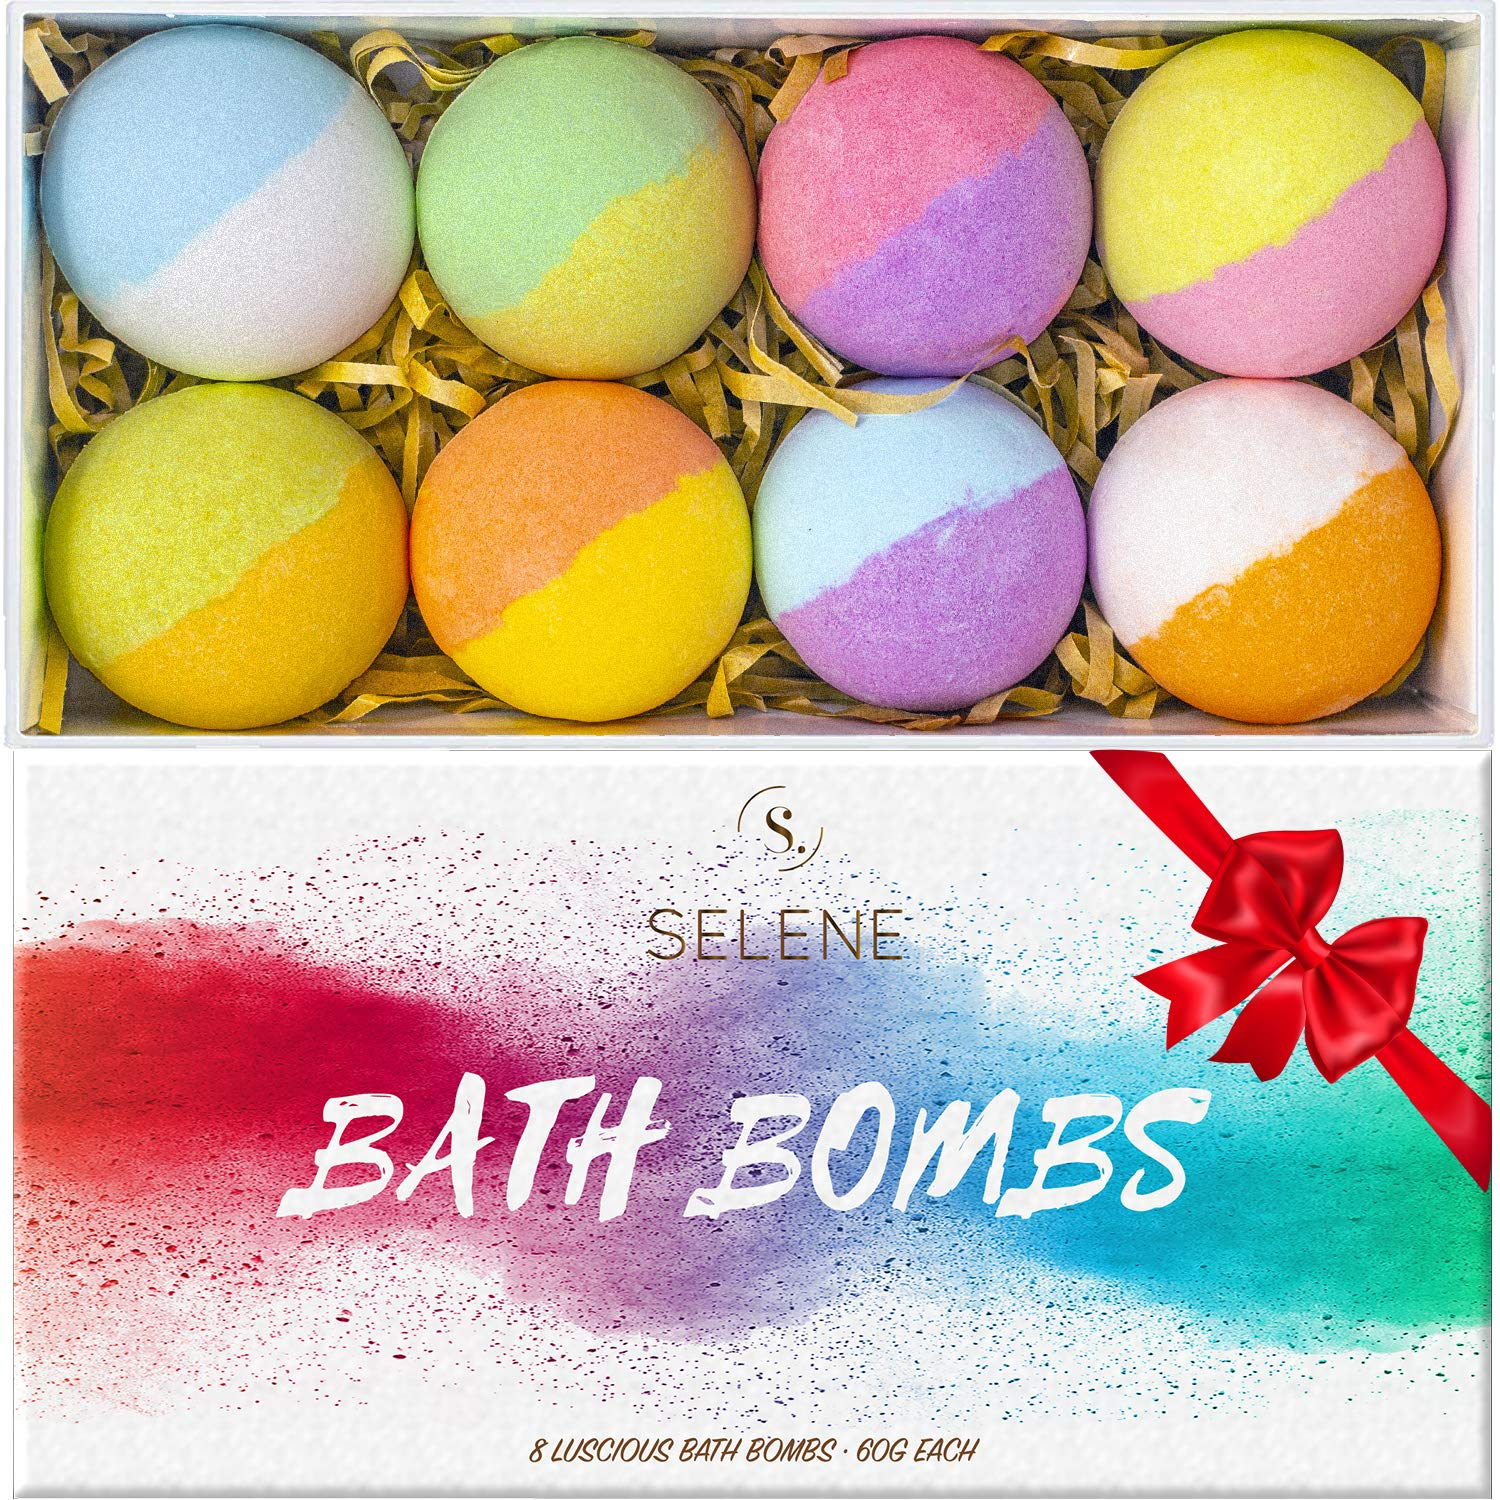 Selene Bath Bombs Gift Set For Kids, Women (8 Pack) - Lush Spa Fizzies To Moisturize Dry Skin - Best Gift Idea for Her, Mom, Girlfriend, Holiday, Birthday - Handmade, Vegan, and Non Staining Fizzies